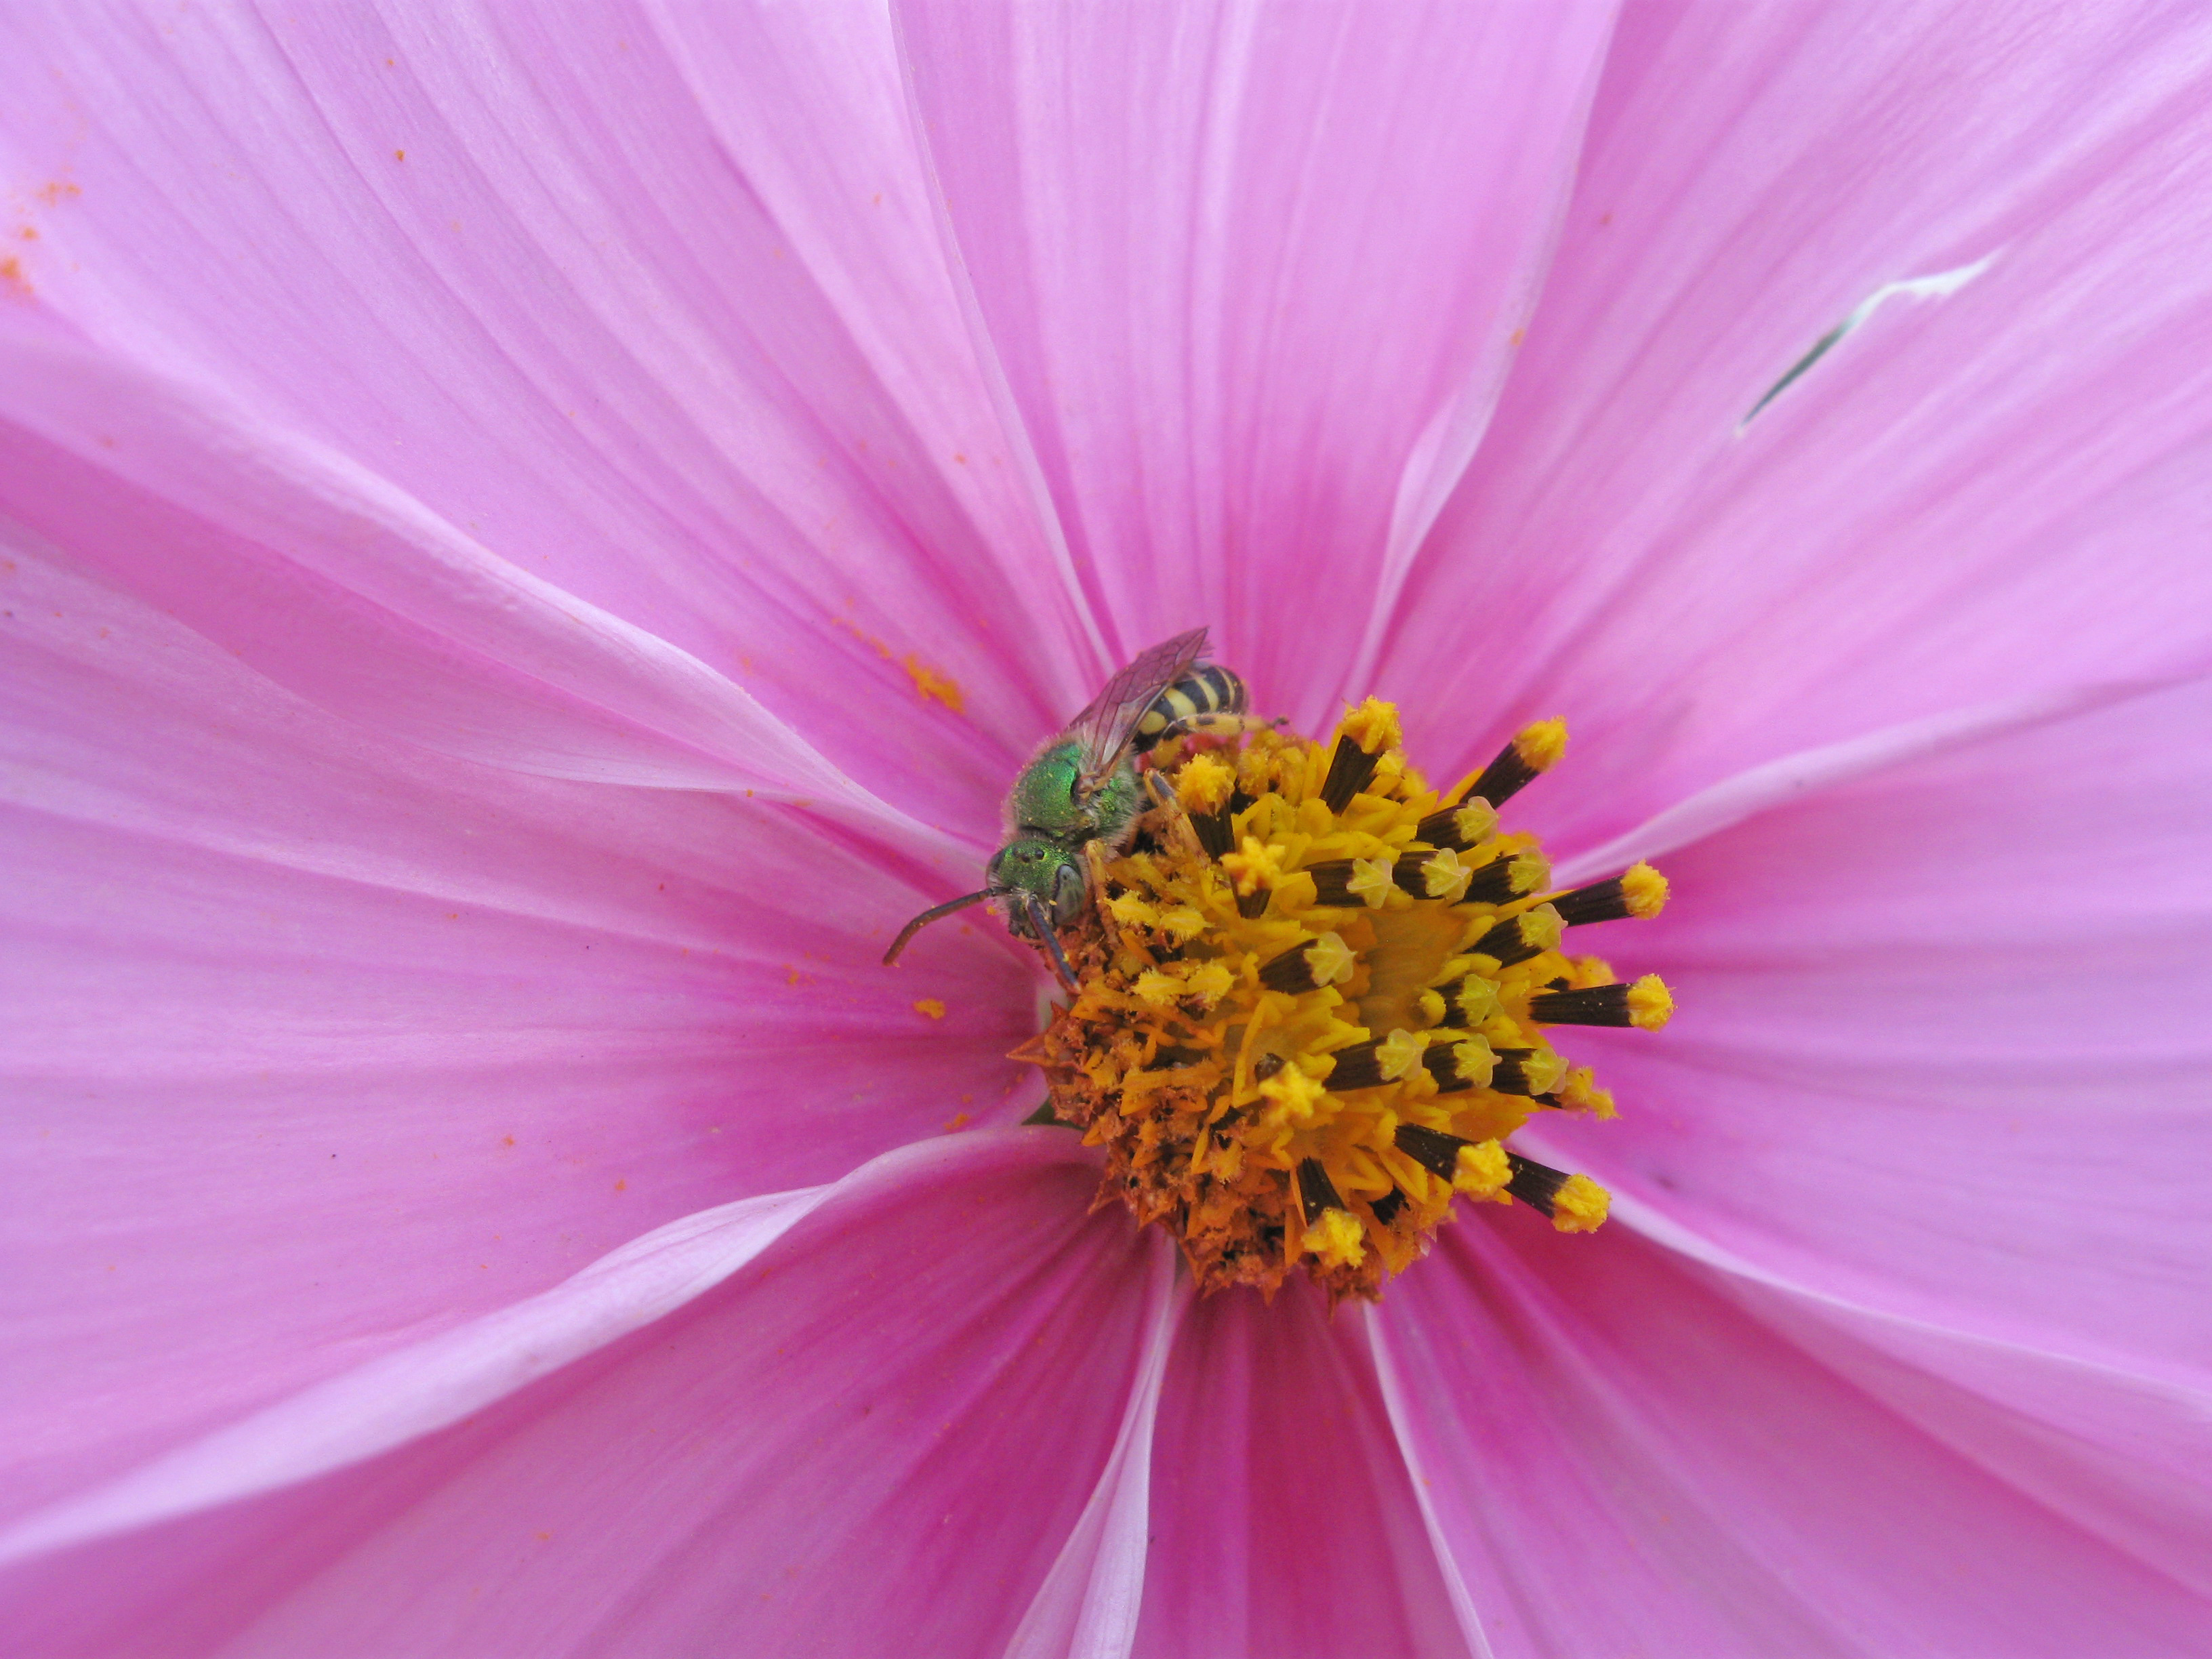 Metallic green sweat bee rests in a cosmos flower